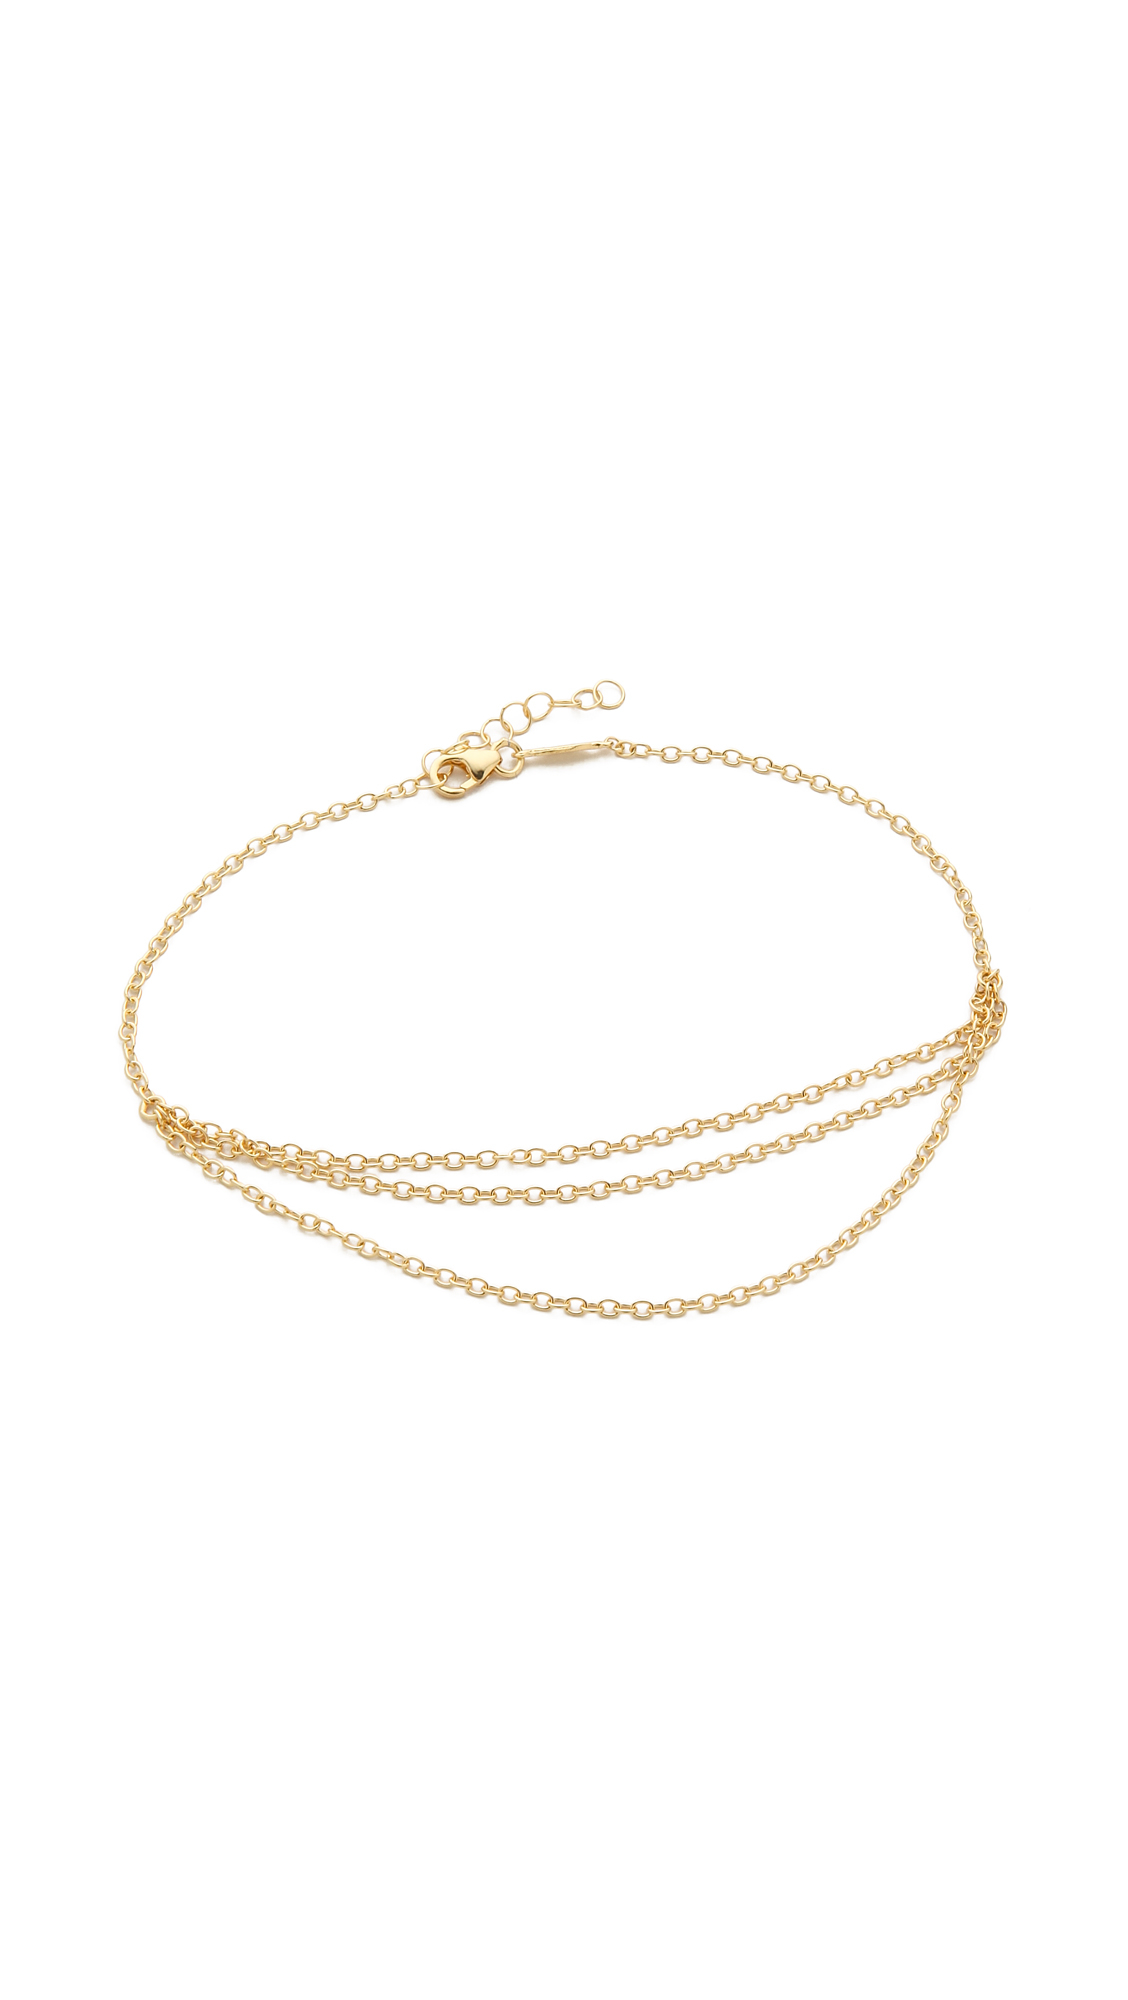 jewelstop chain mm yellow anklet lobster gold solid karat rope claw clasp pin